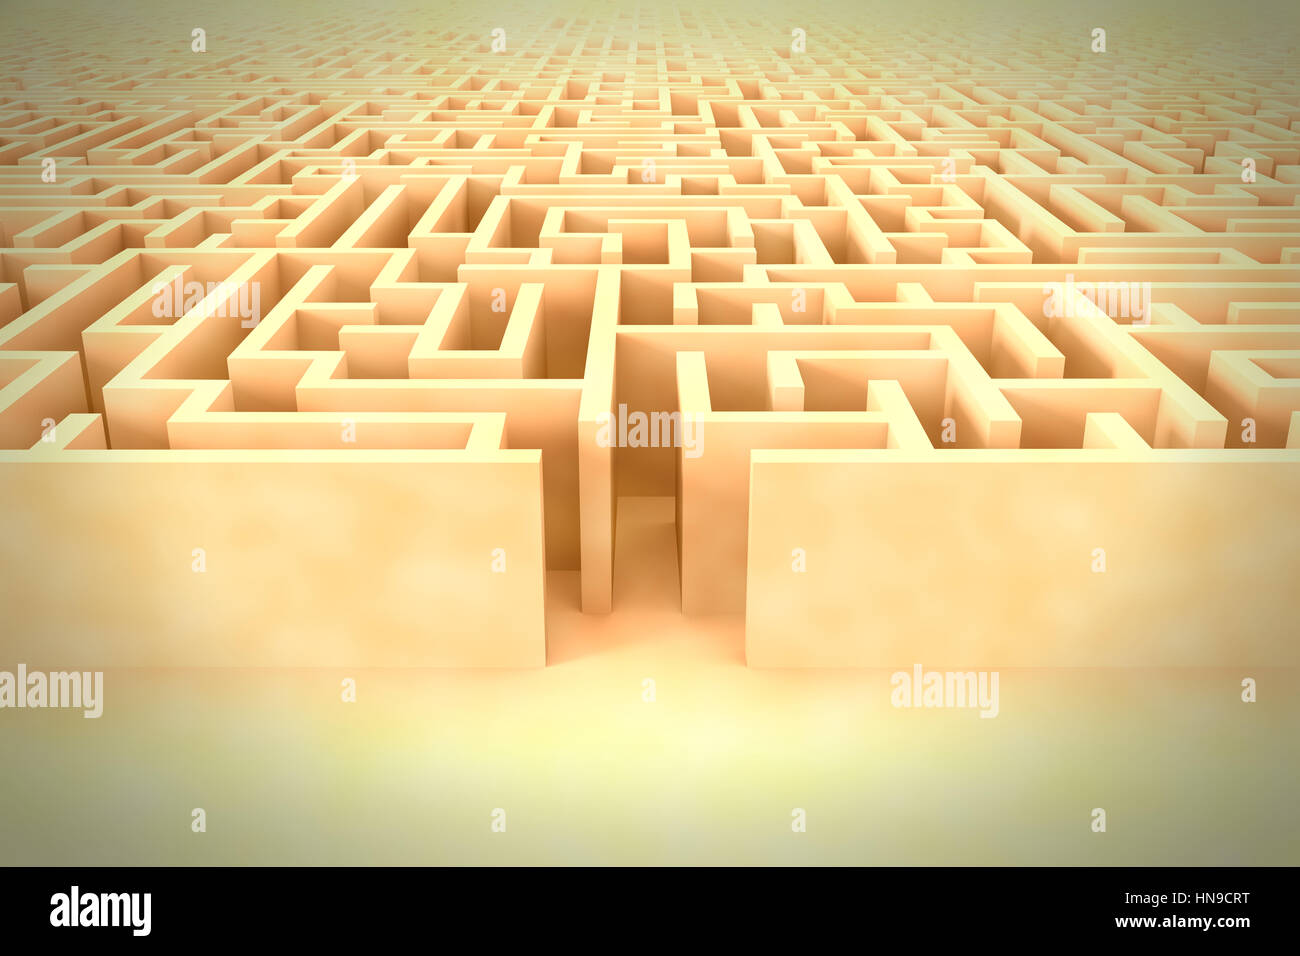 huge vintage maze structure with entrance - Stock Image